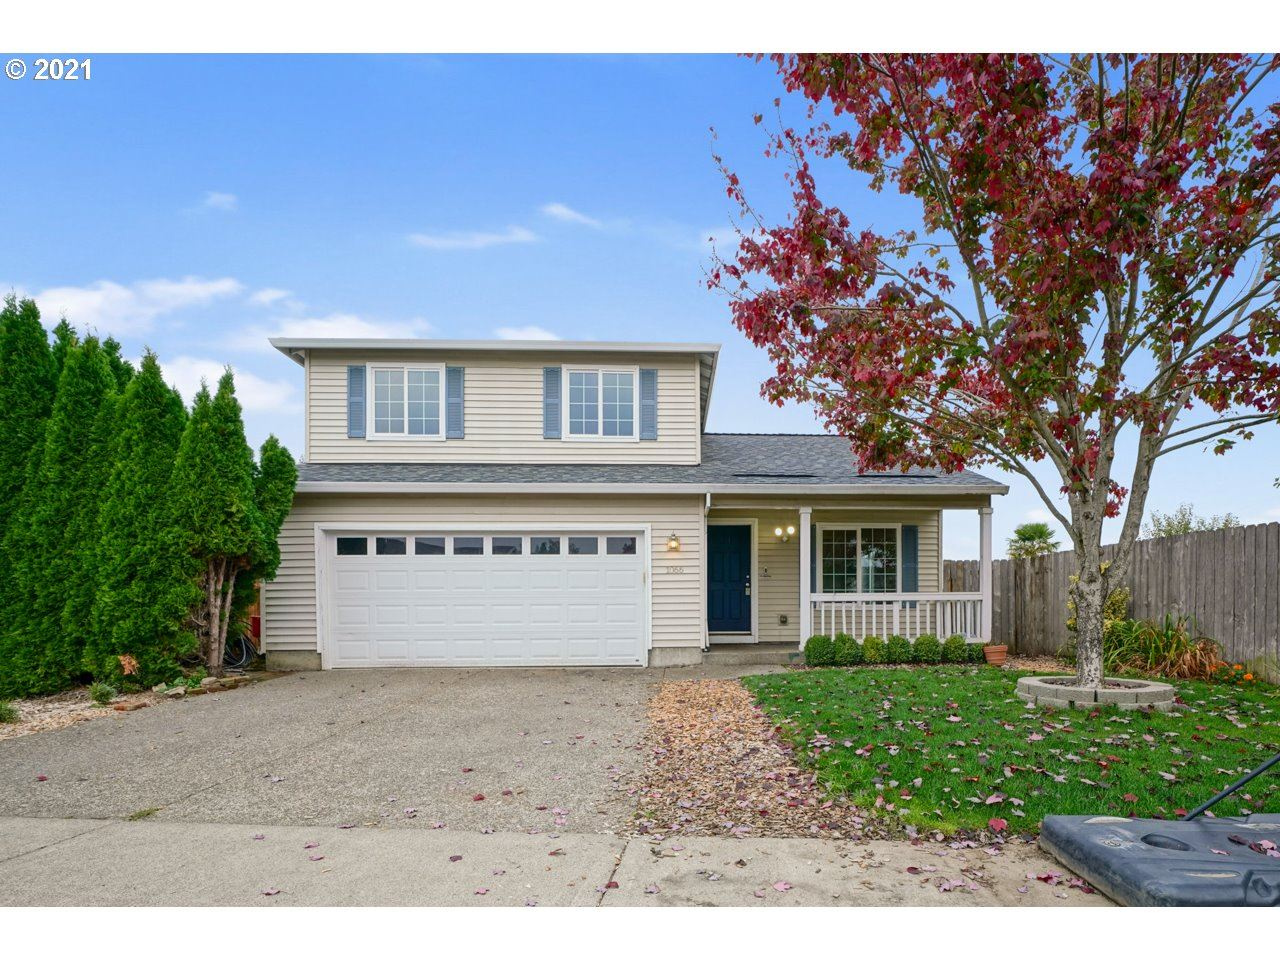 Photo of 1066 DEPOT CT, Gervais, OR 97026 (MLS # 21690058)